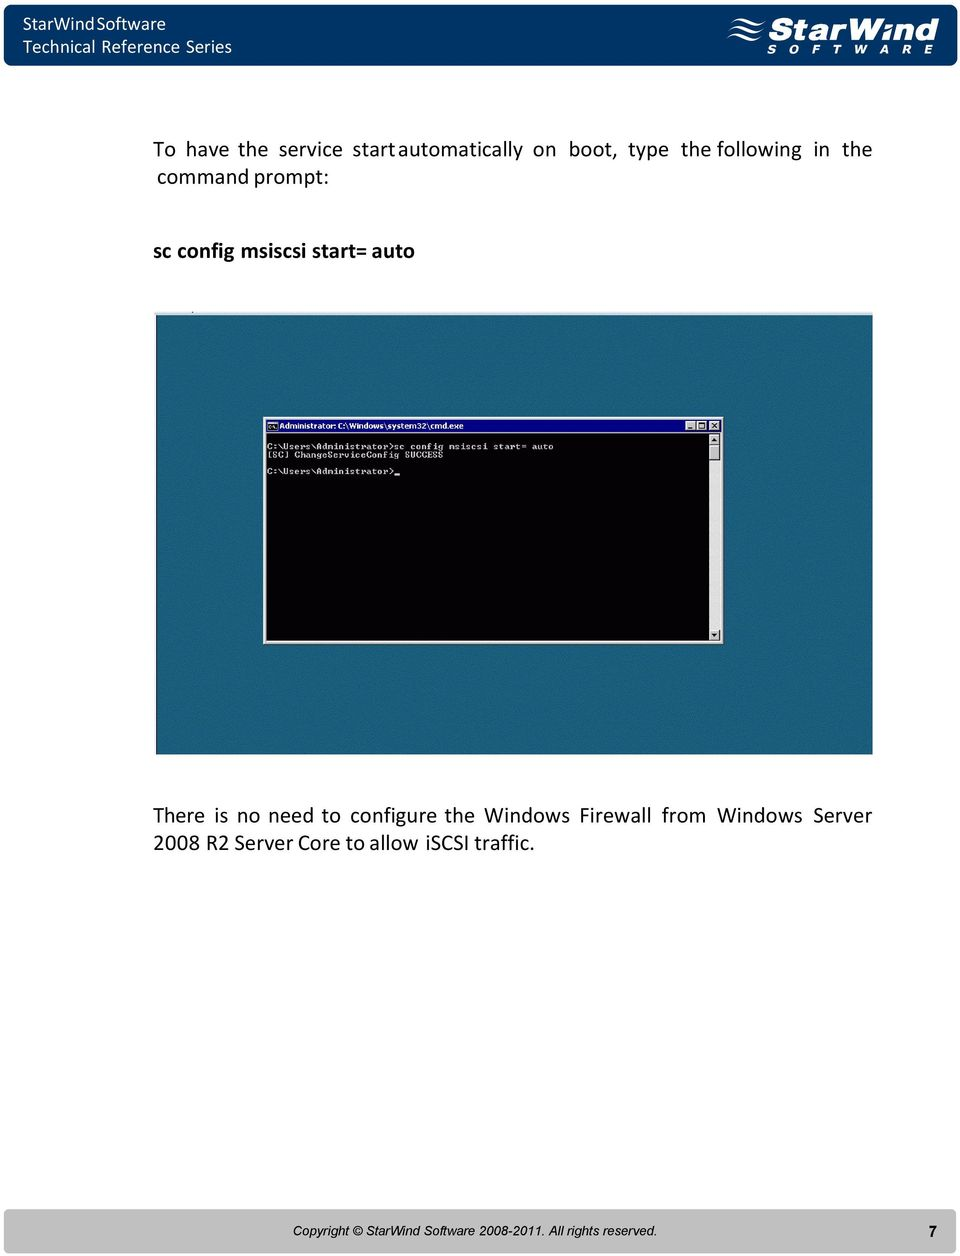 to configure the Windows Firewall from Windows Server 2008 R2 Server